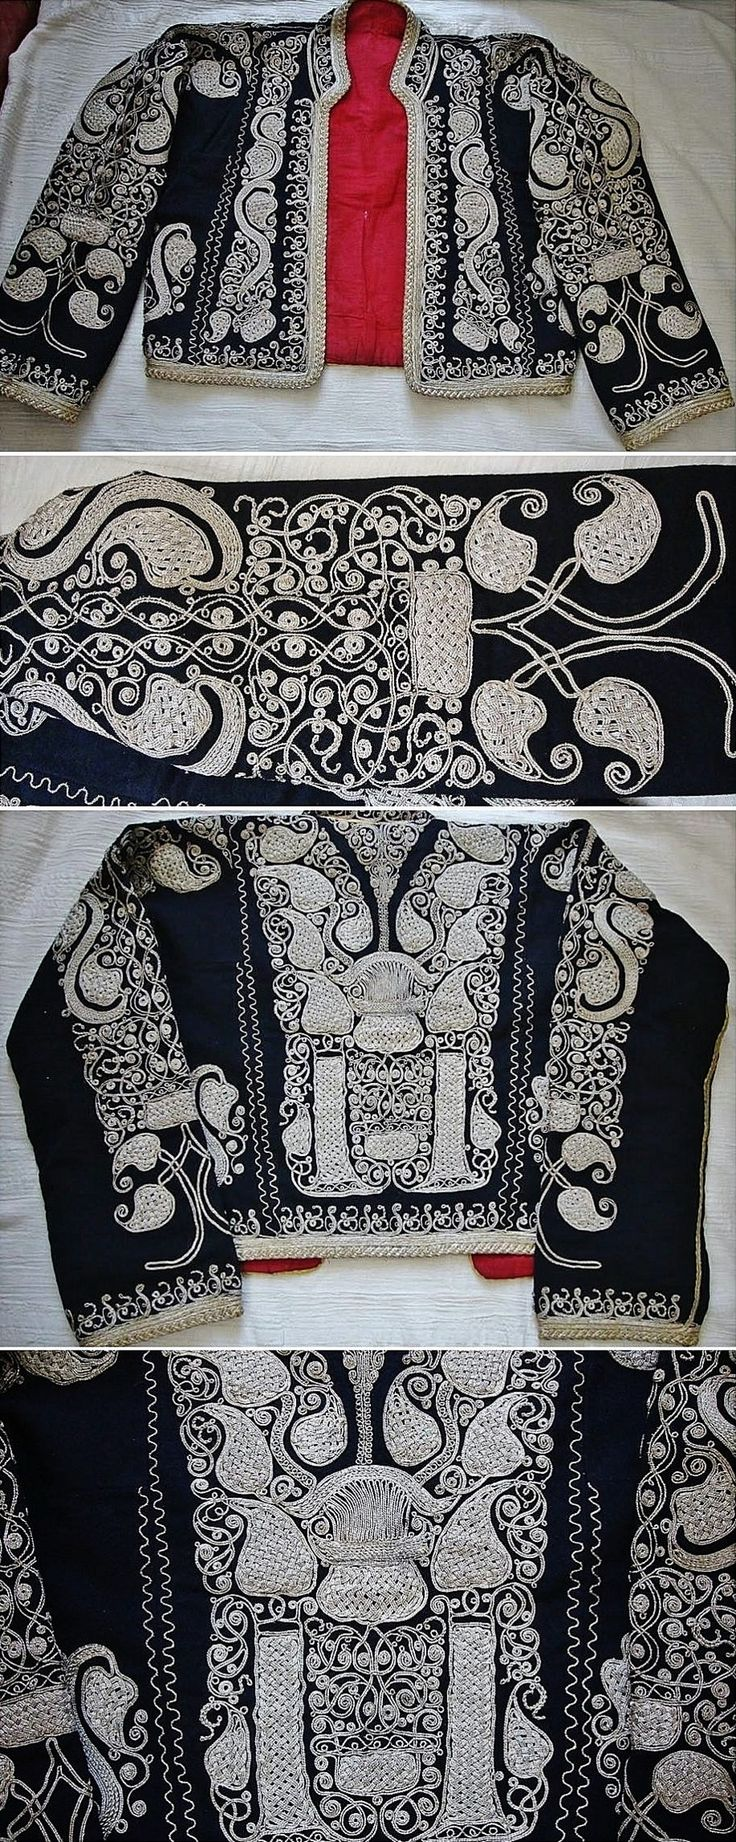 Traditional embroidered women's 'cepken' (long-sleeved vest) from the Havran district (in the western part of the Balıkesir province). Locally called 'çuha'. Early 20th century. Design: 'armutlu' (= with pear-motif). 'Silver' metal thread on velvet; embroidery technique: 'kordon tutturma' (applied cord). (Source: Tekin Uludoğan, Balıkesir).